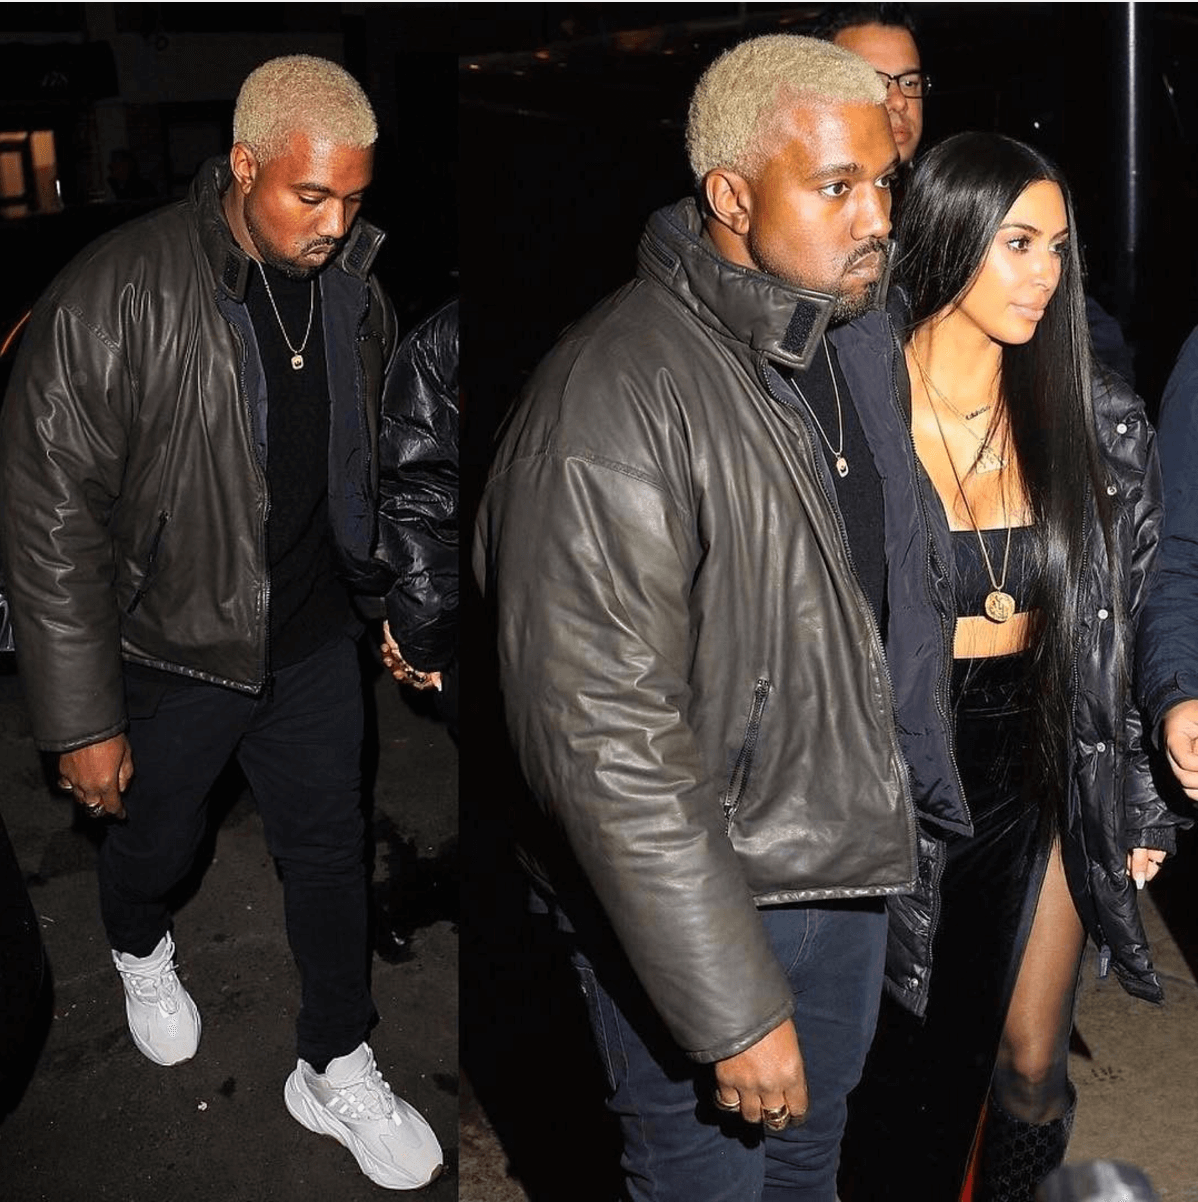 Kanye West in an upcoming adidas Yeezy Runner